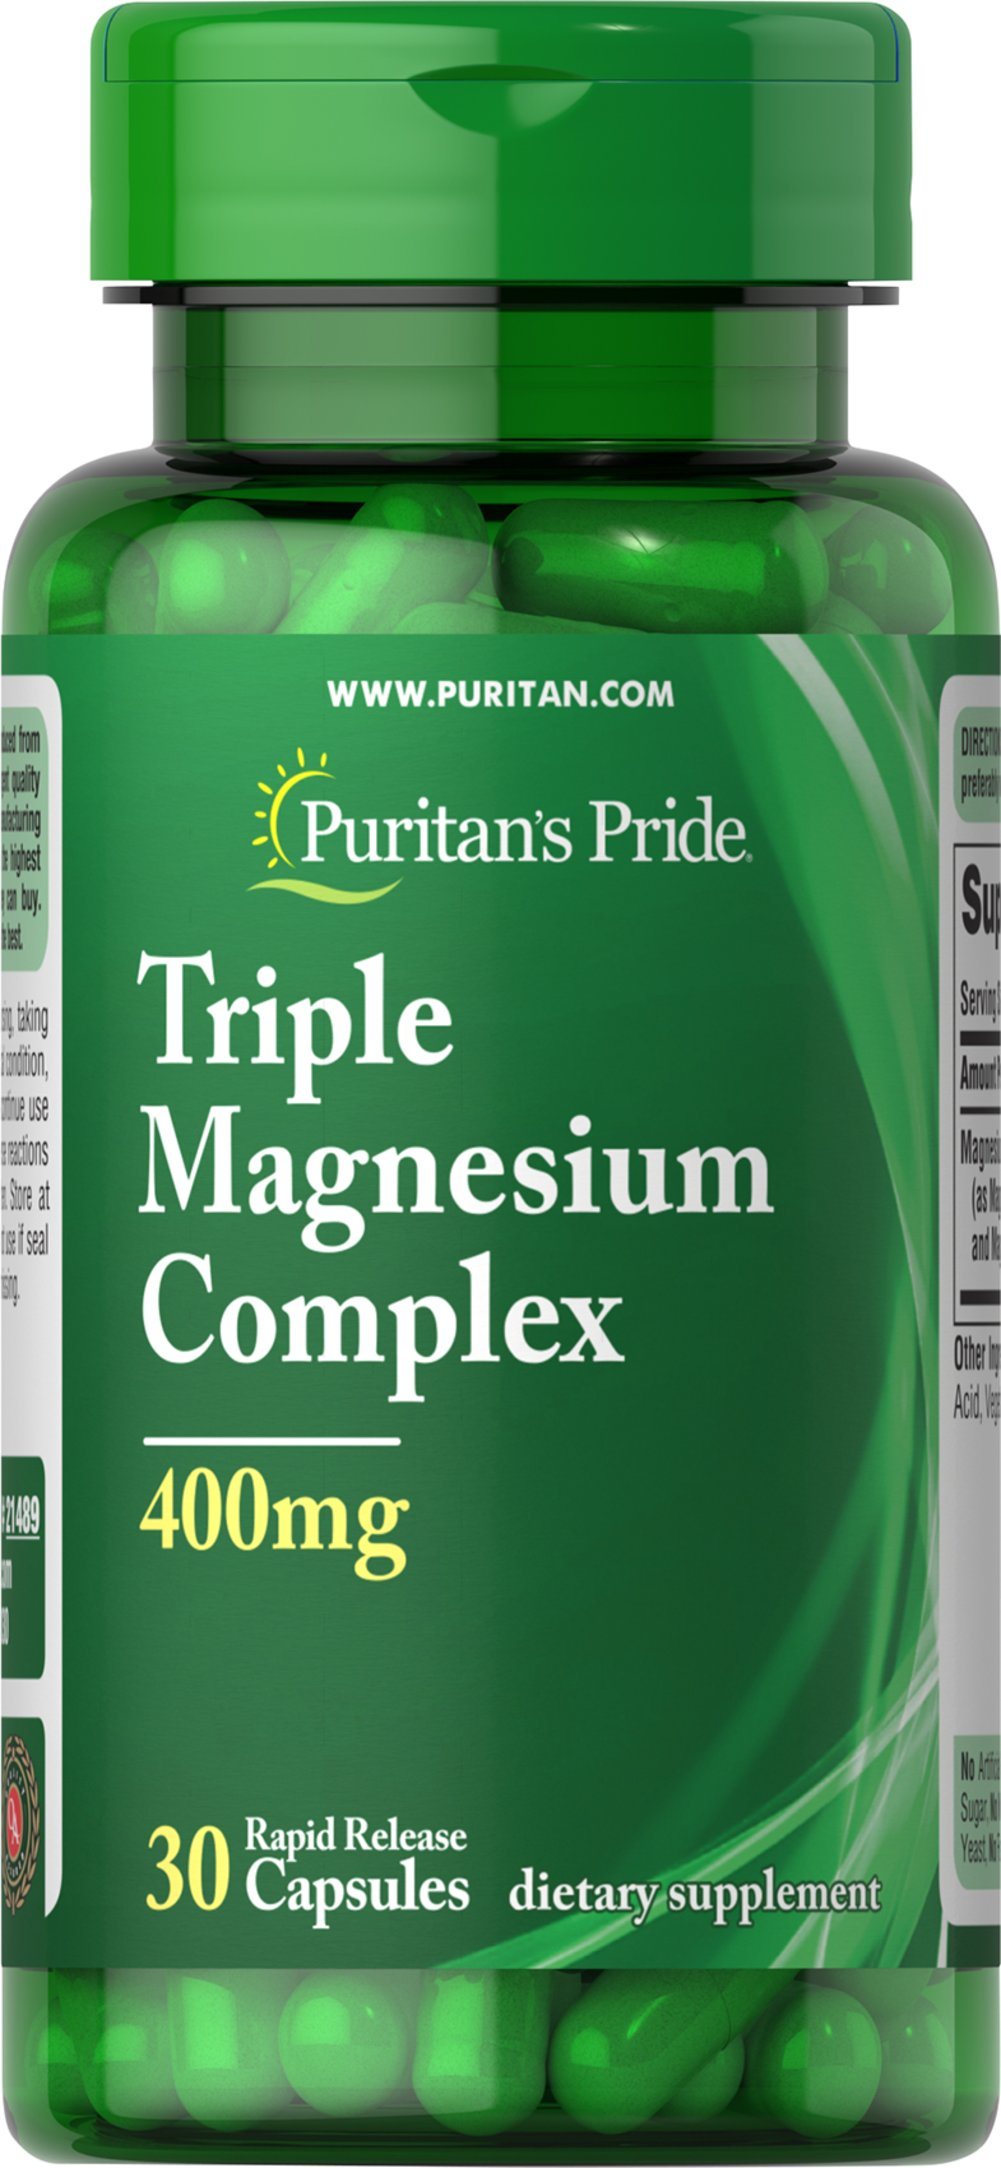 Triple Magnesium Complex 400 mg Trial Size Thumbnail Alternate Bottle View